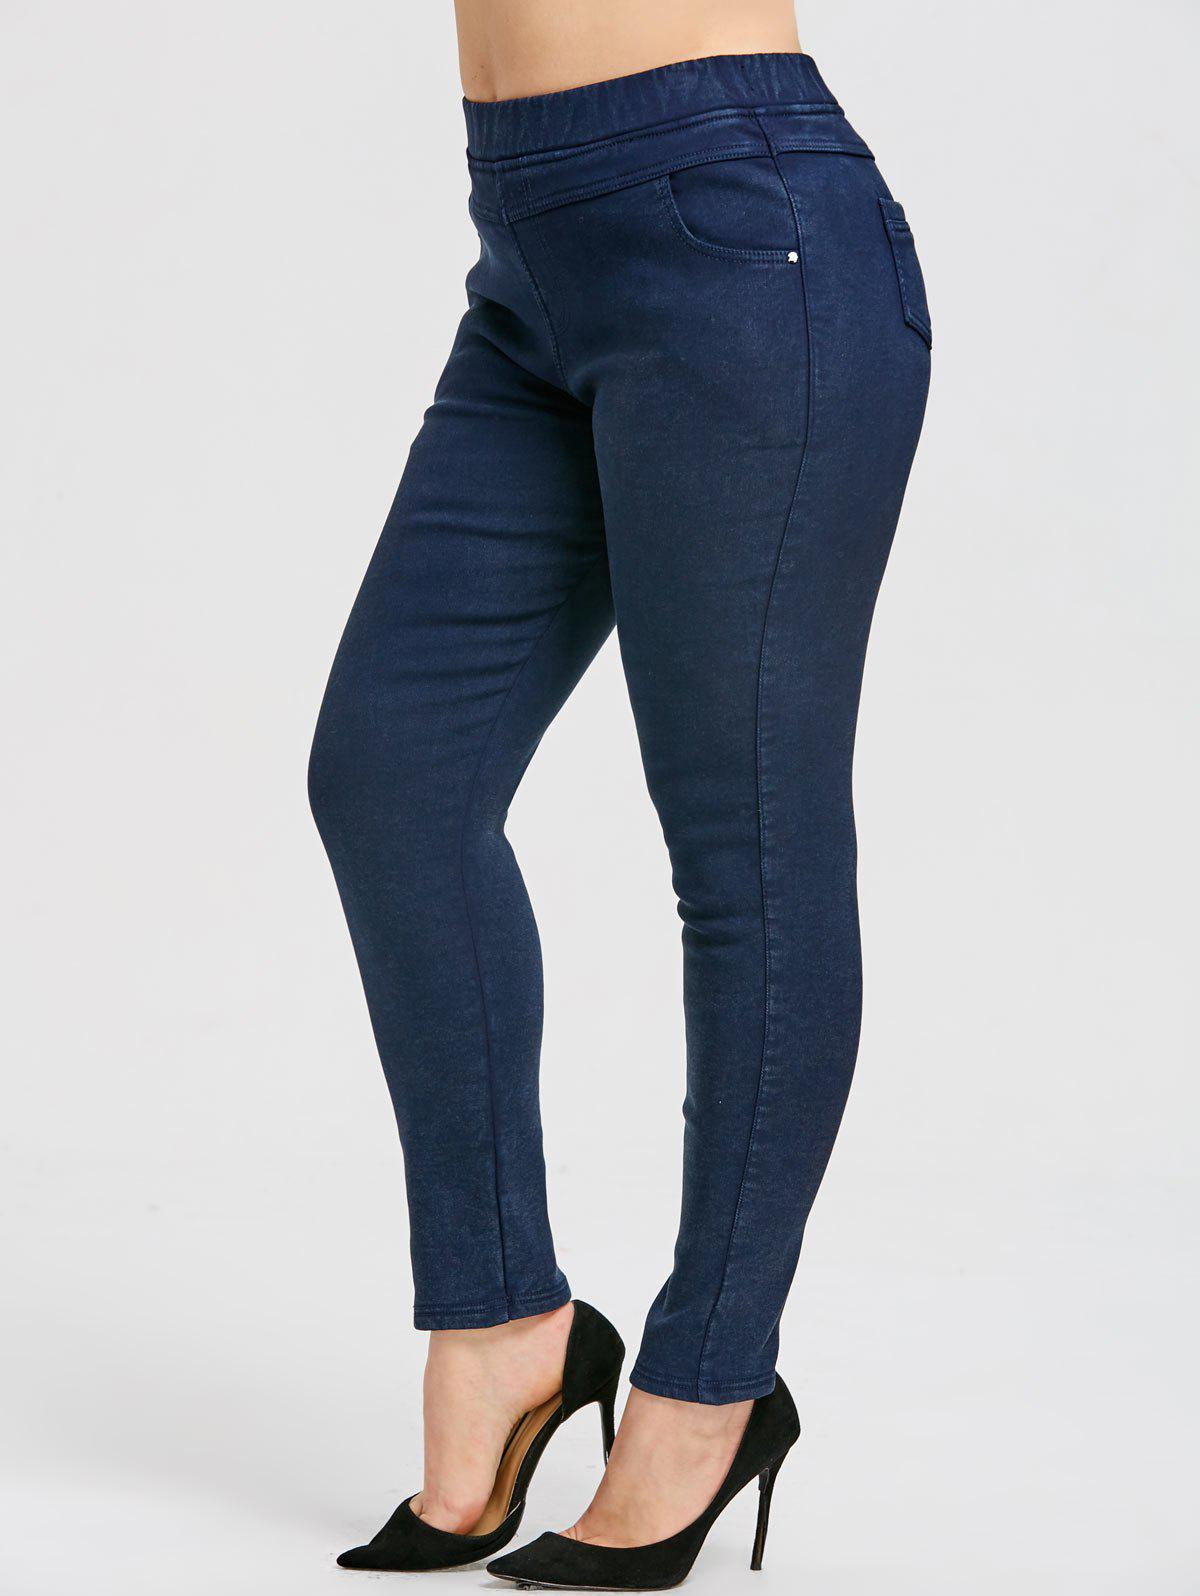 Chic Elastic Waist Plus Size  Fleece Lined Jeans